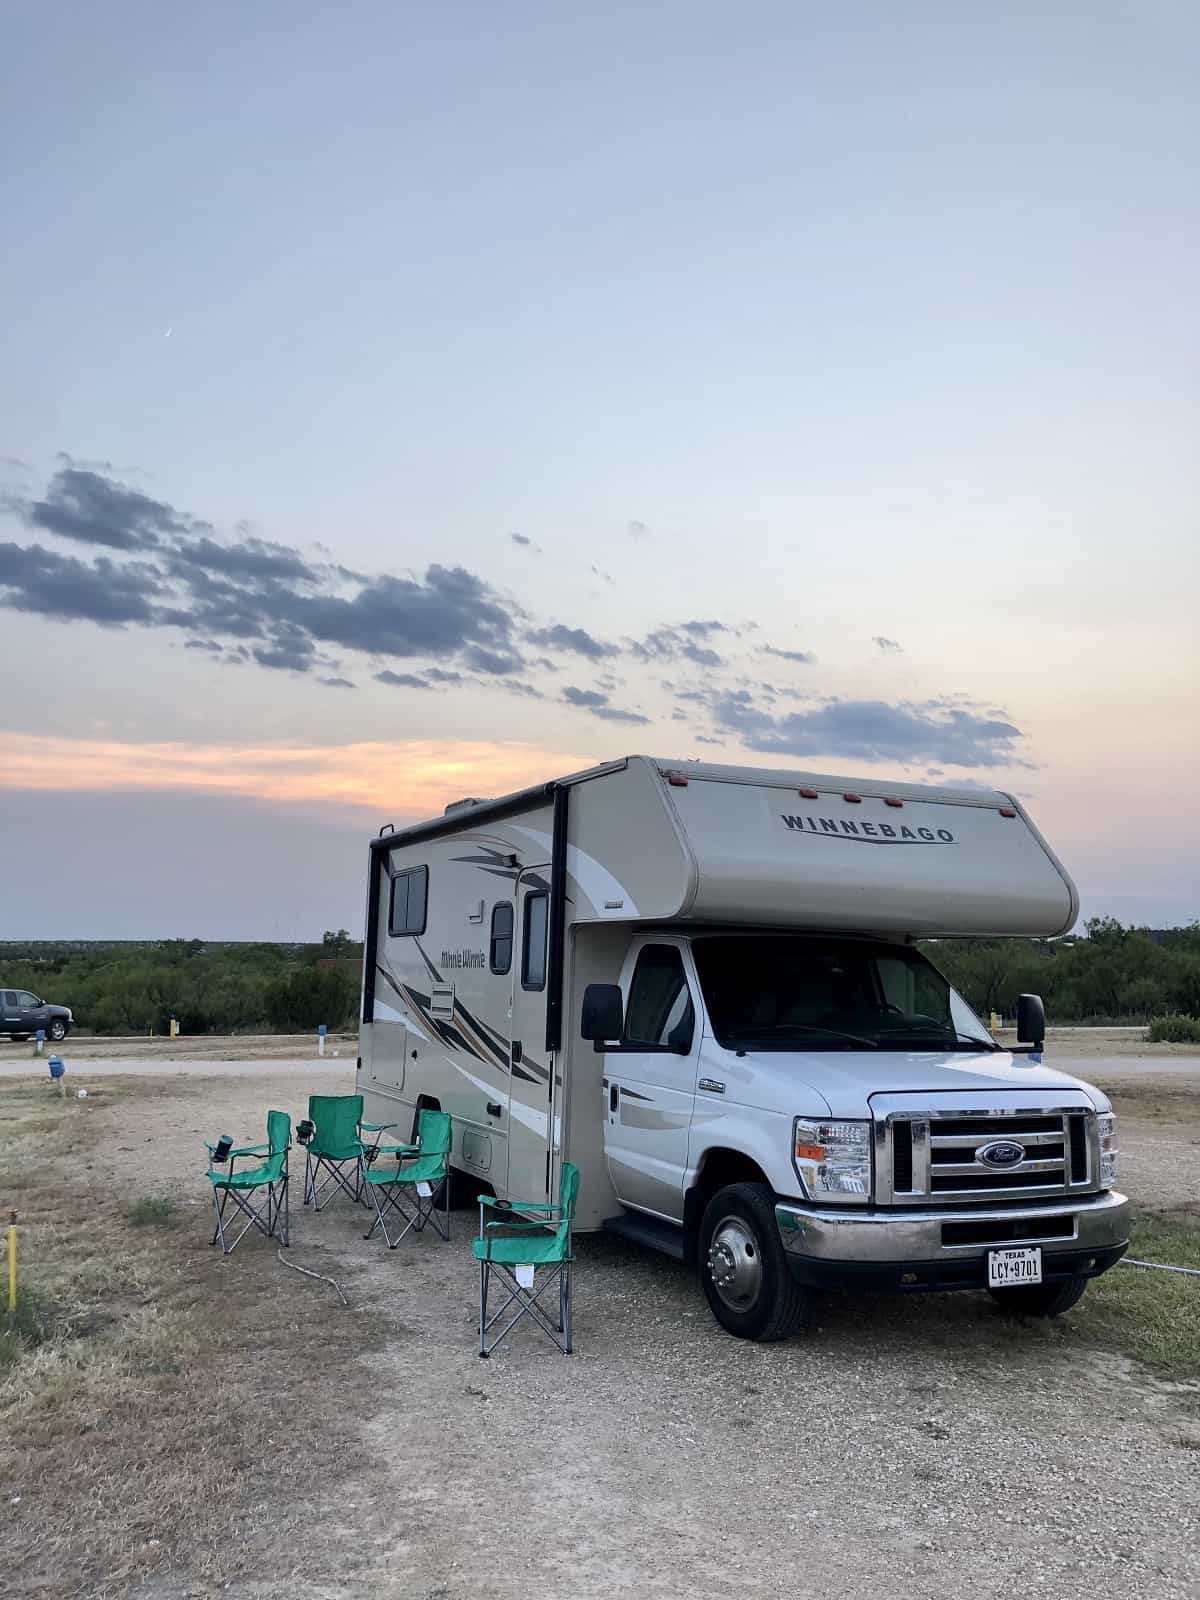 Mike Brauer RV